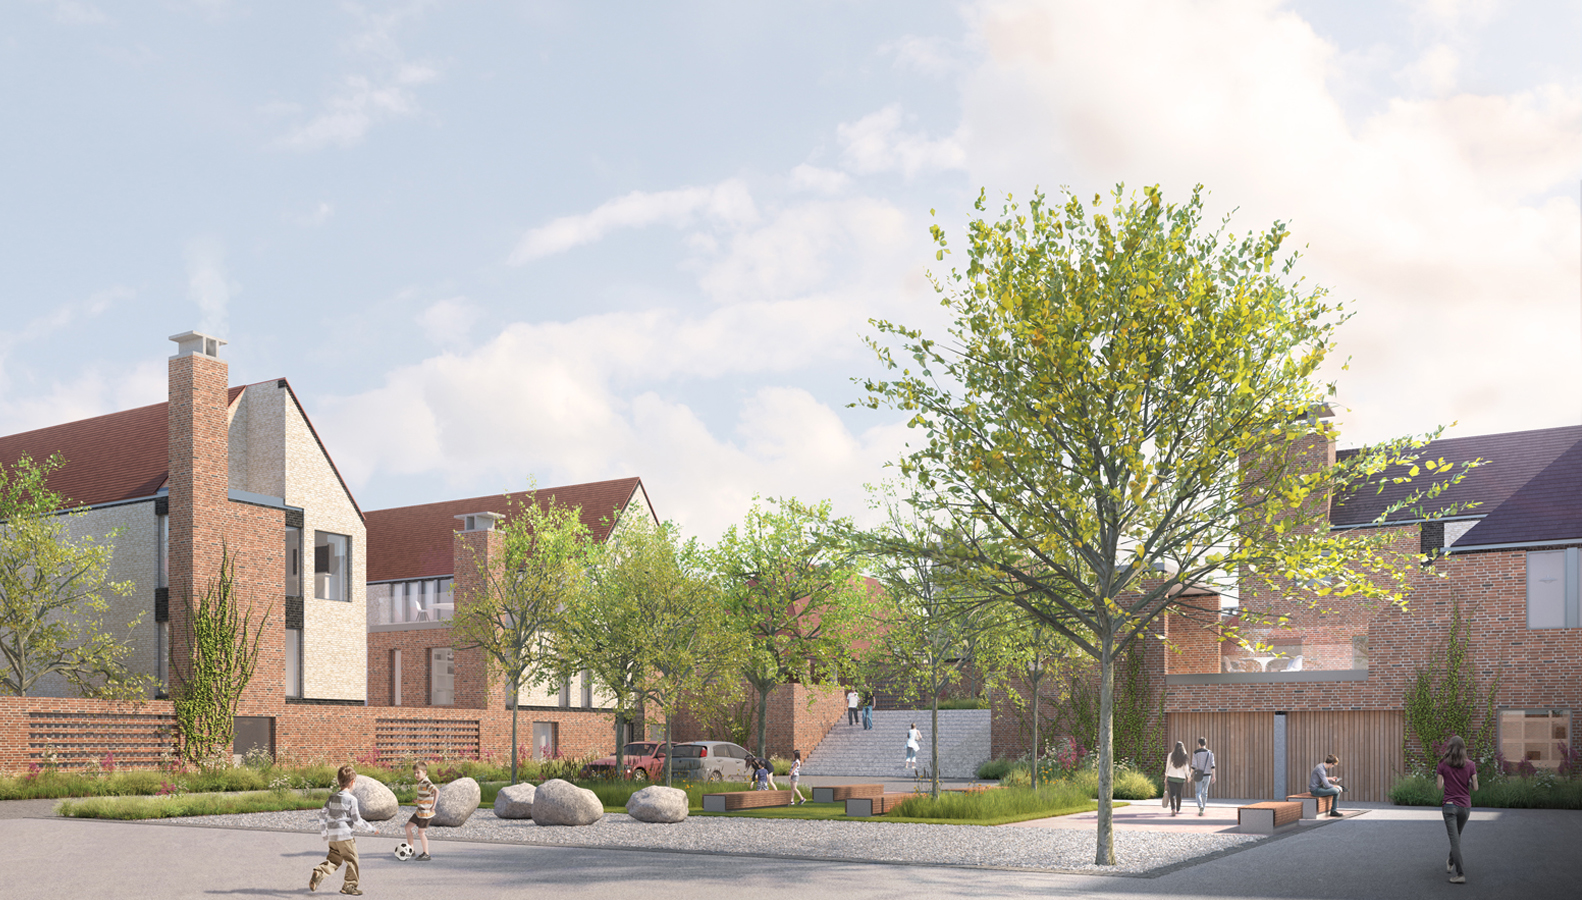 a 140-home 'garden city' development on the outskirts of Canterbury for detailed planning